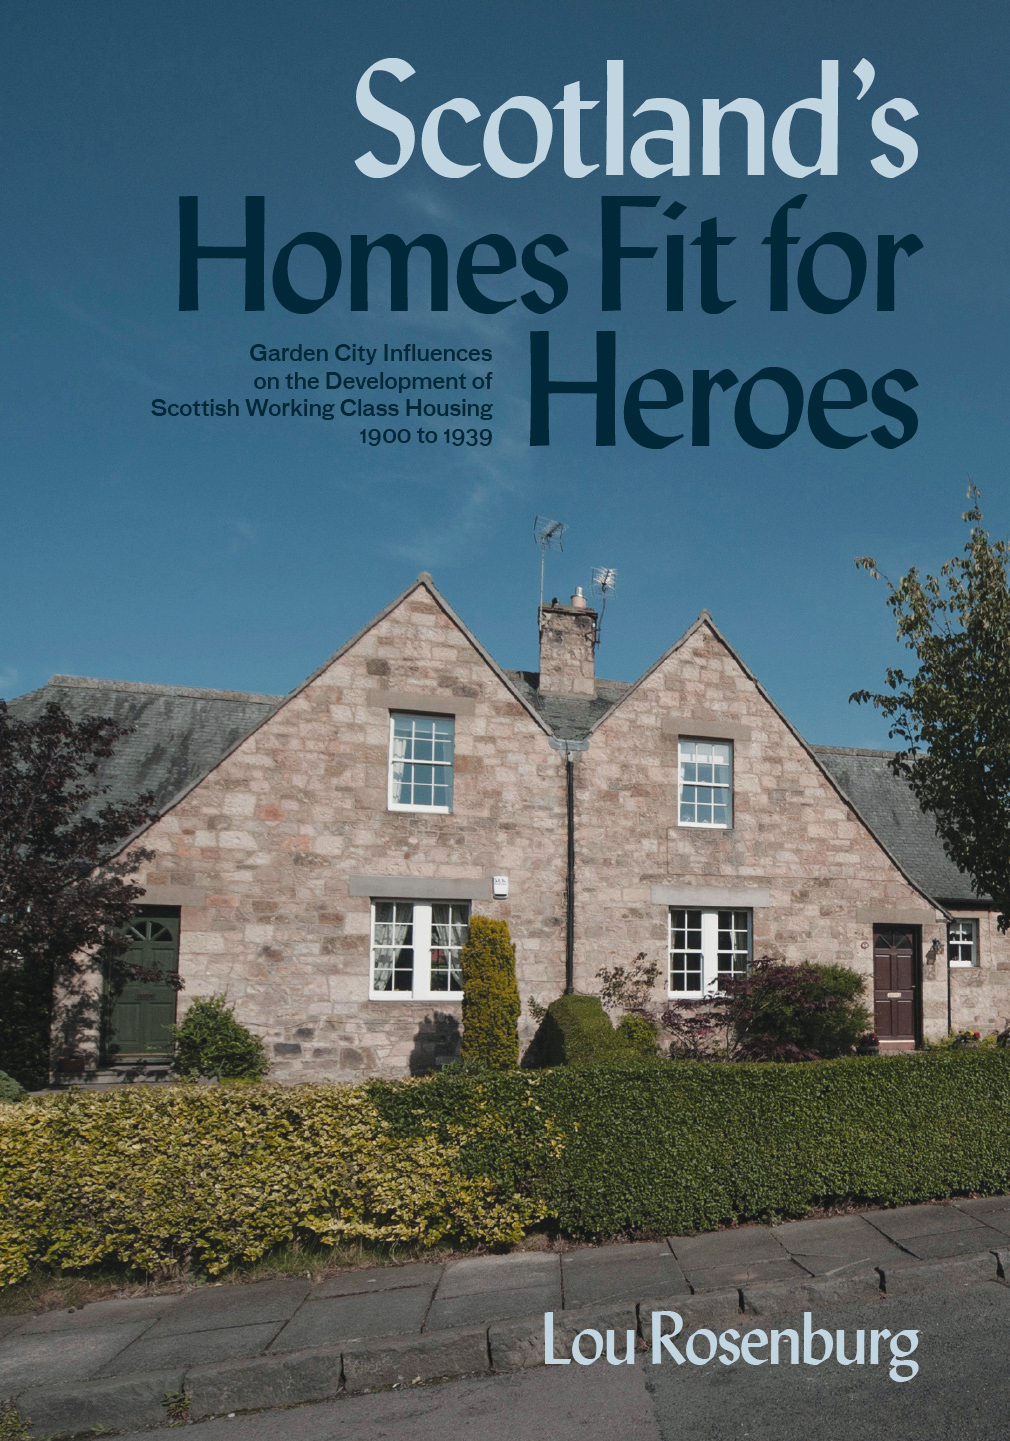 Image of Scotland Homes Fit for Heros book cover